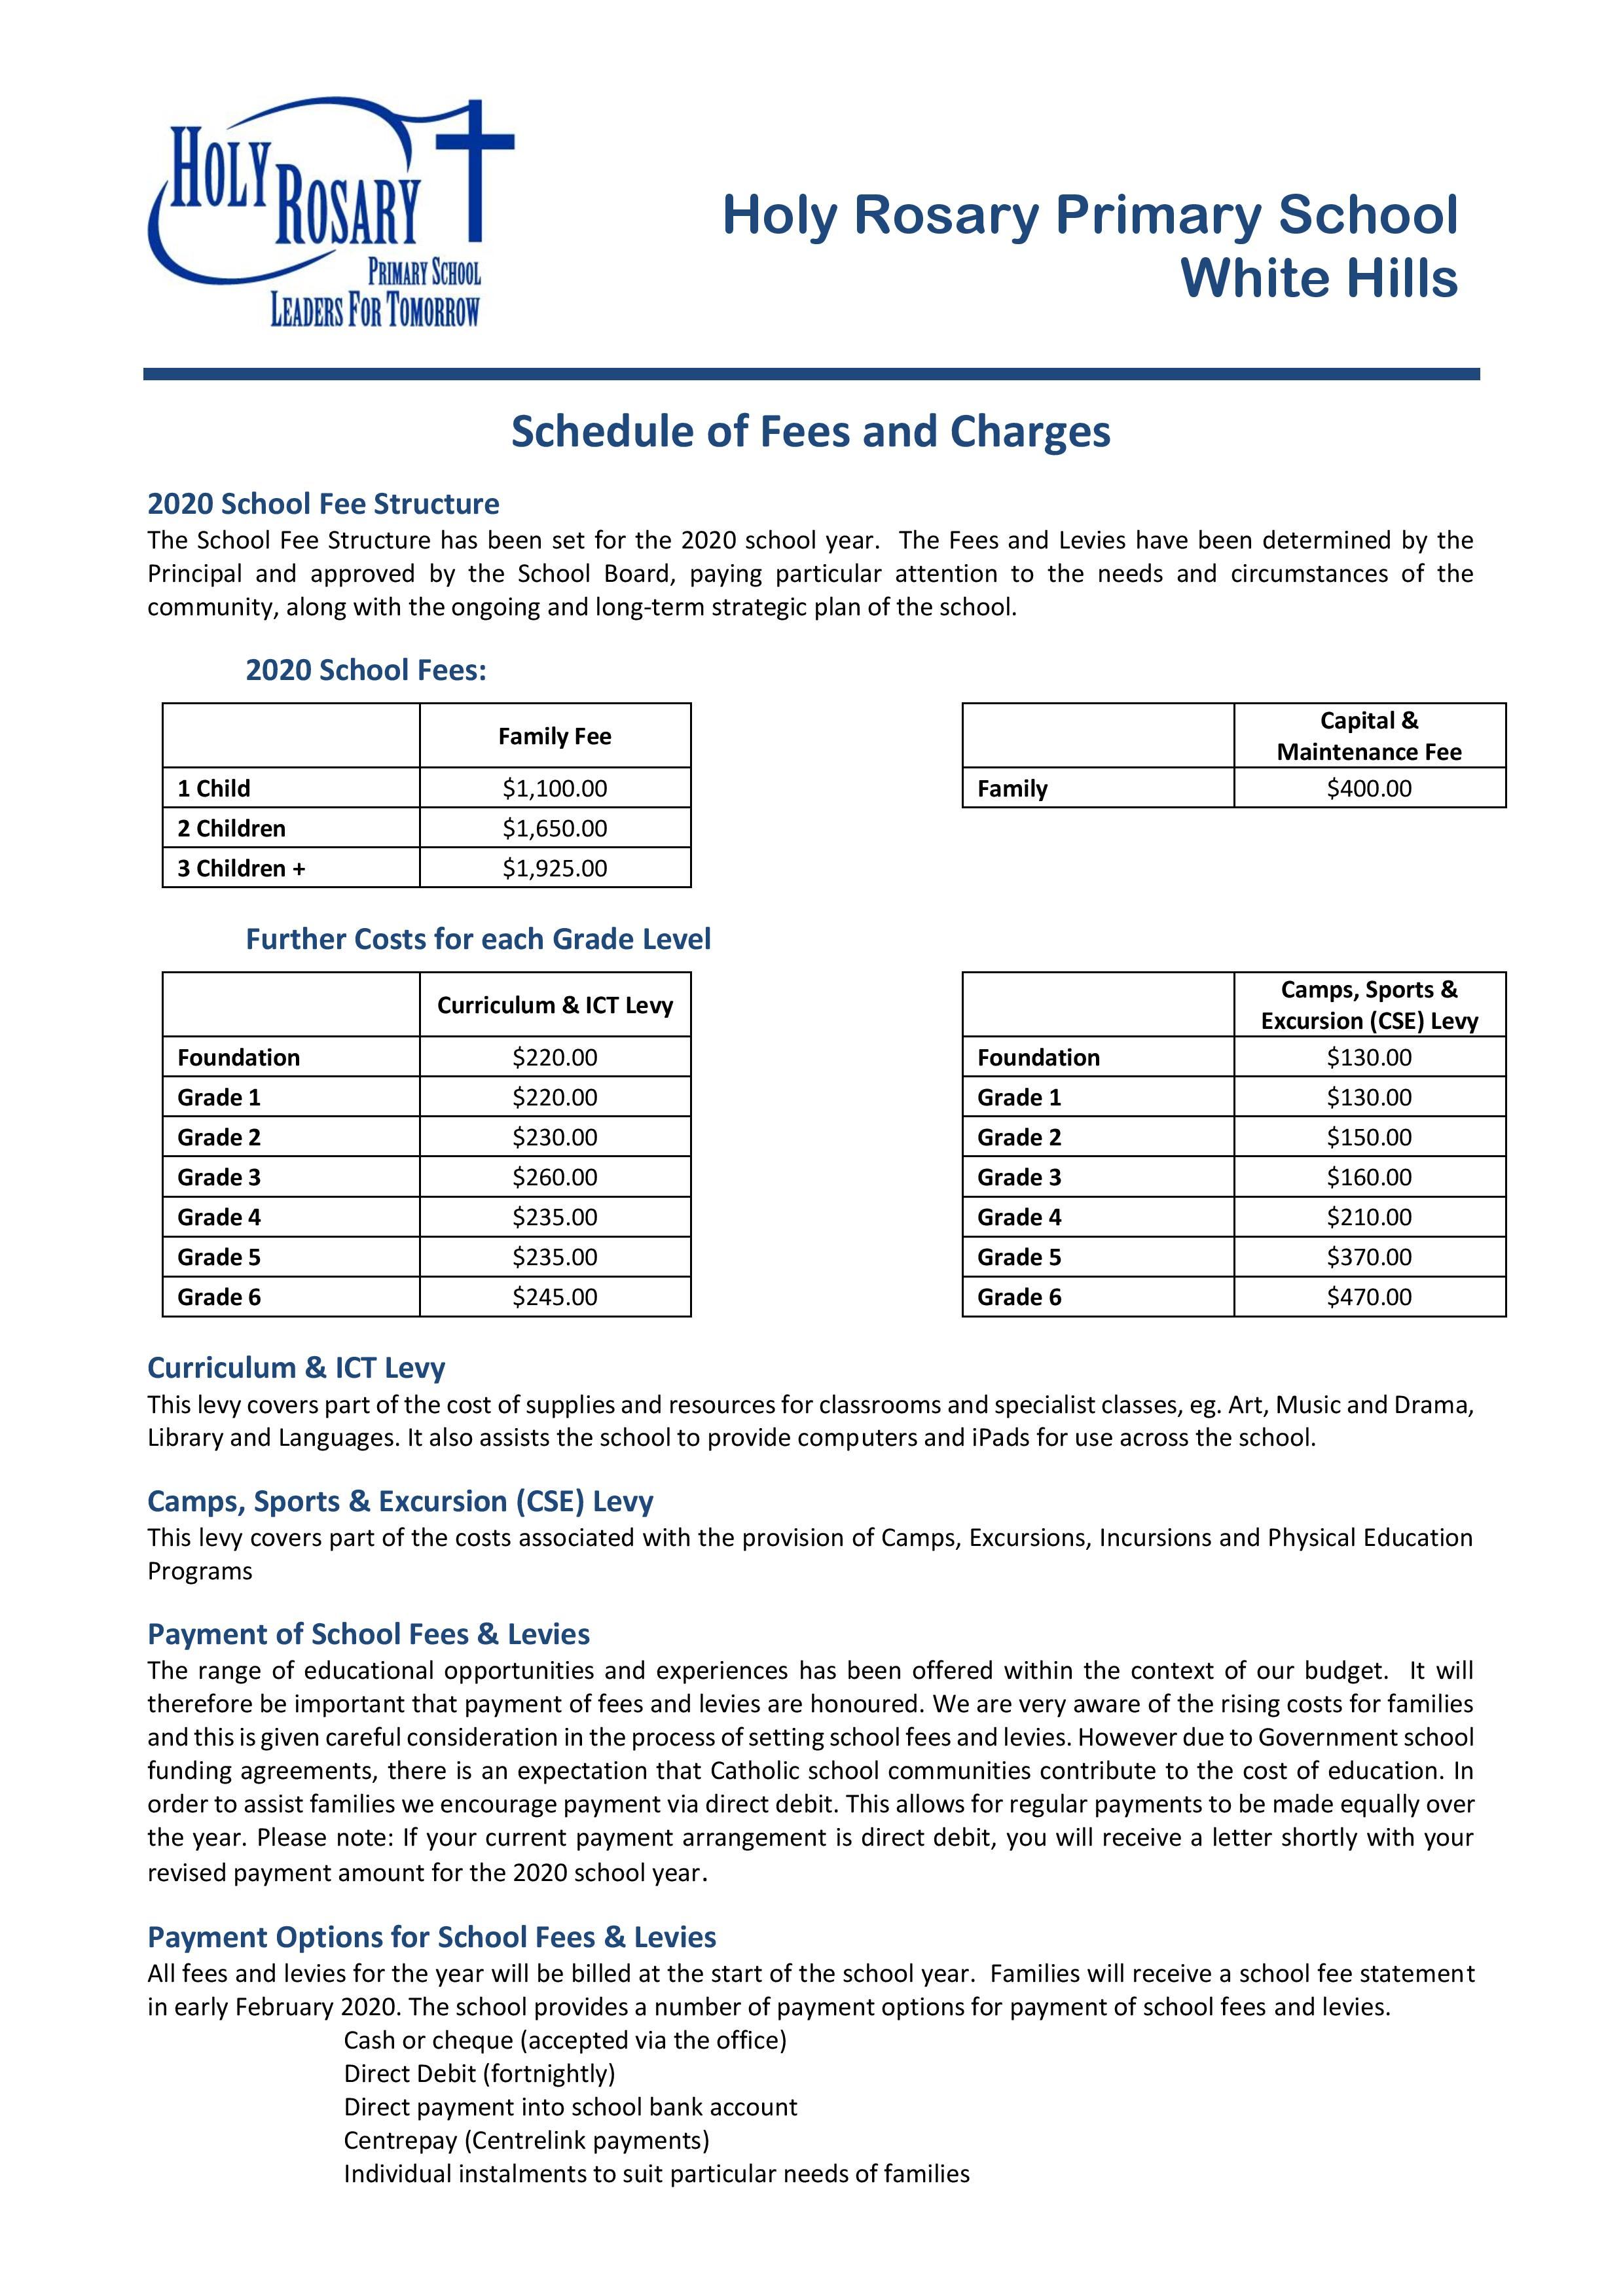 2020 Schedule of Fees Charges